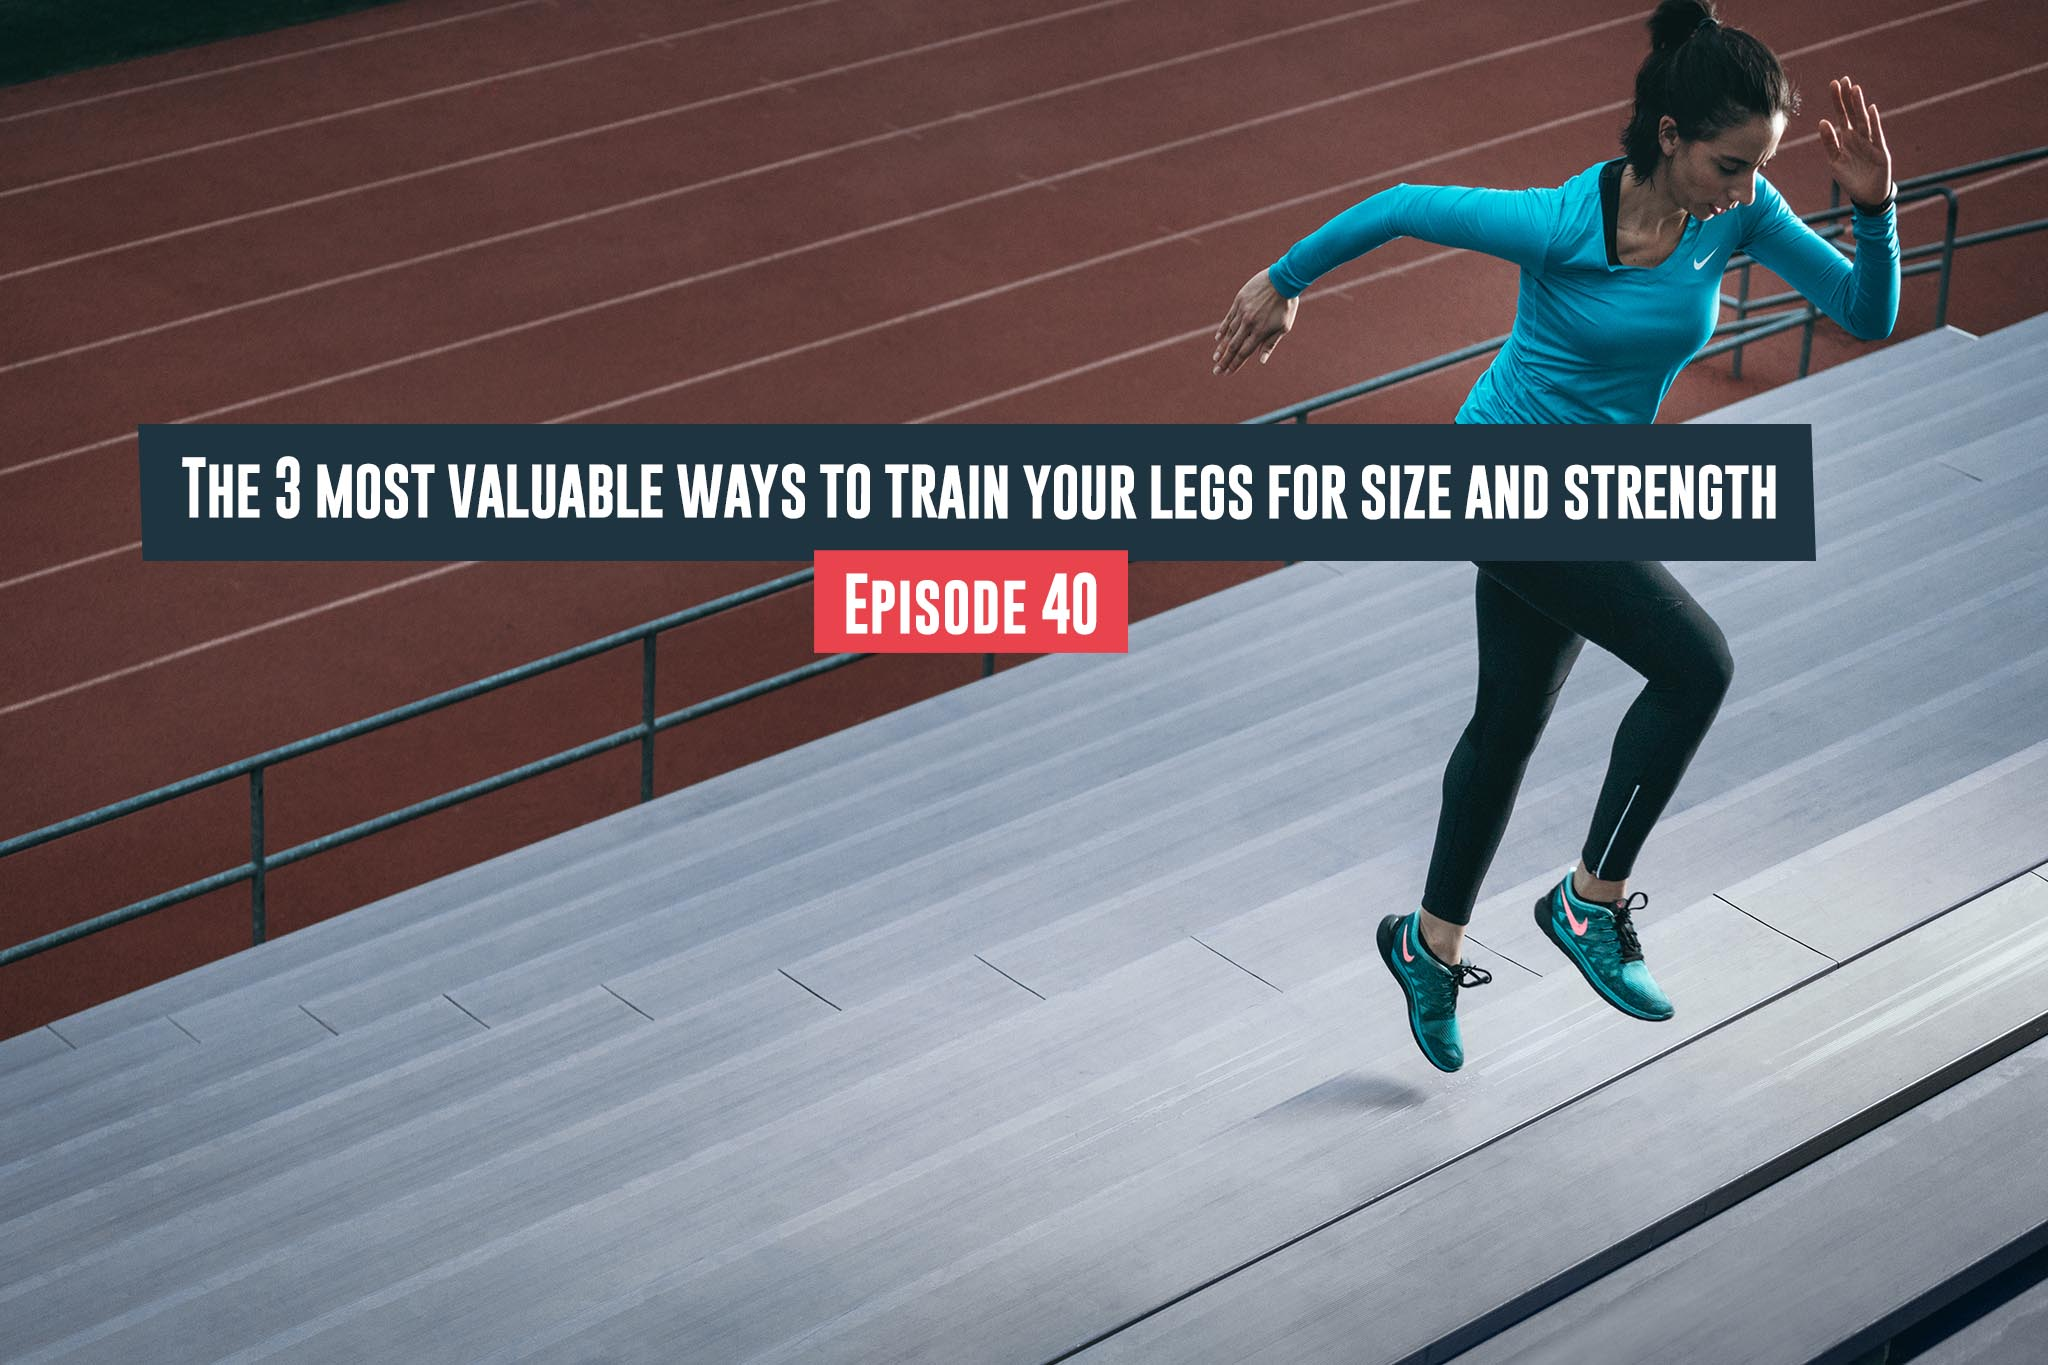 train your legs for size and strength